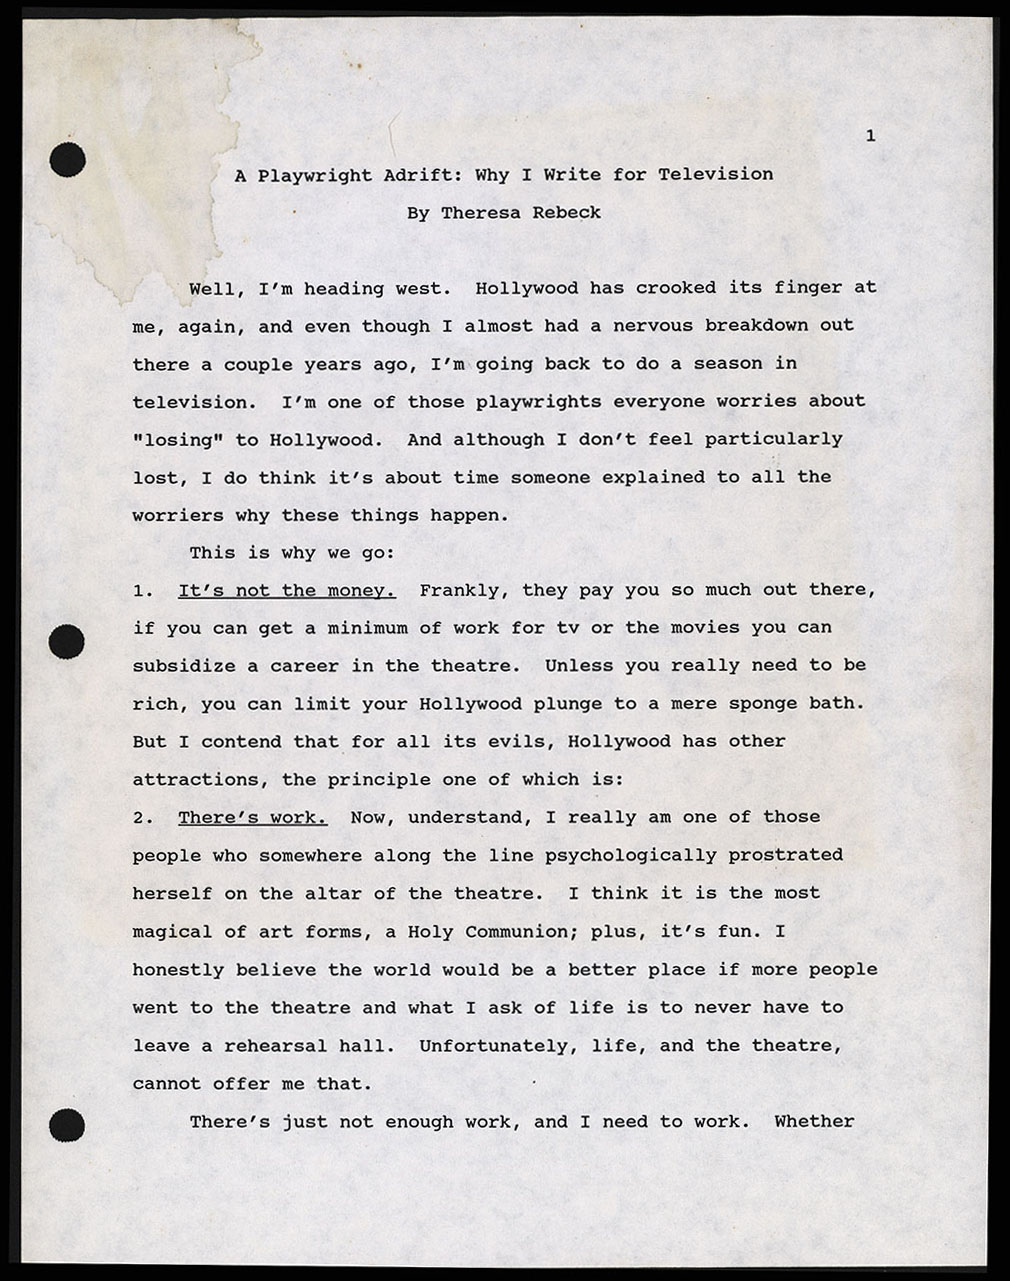 """Typescript draft of """"A Playwright Adrift: Why I Write for Television,"""" 1995"""